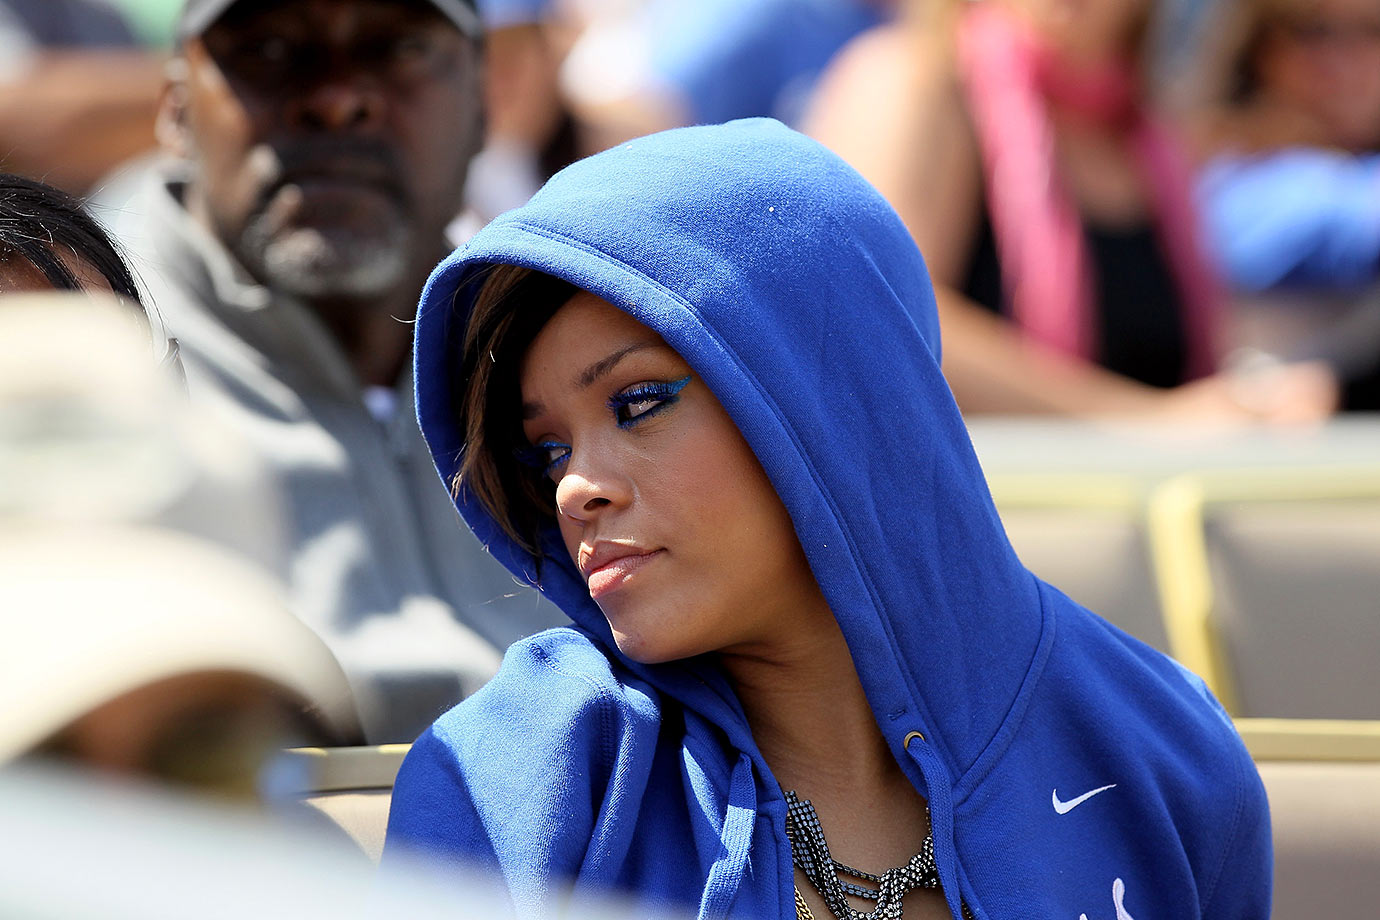 Rihanna attends the Los Angeles Dodgers game against the Arizona Diamondbacks on April 13, 2010 at Dodger Stadium in Los Angeles.